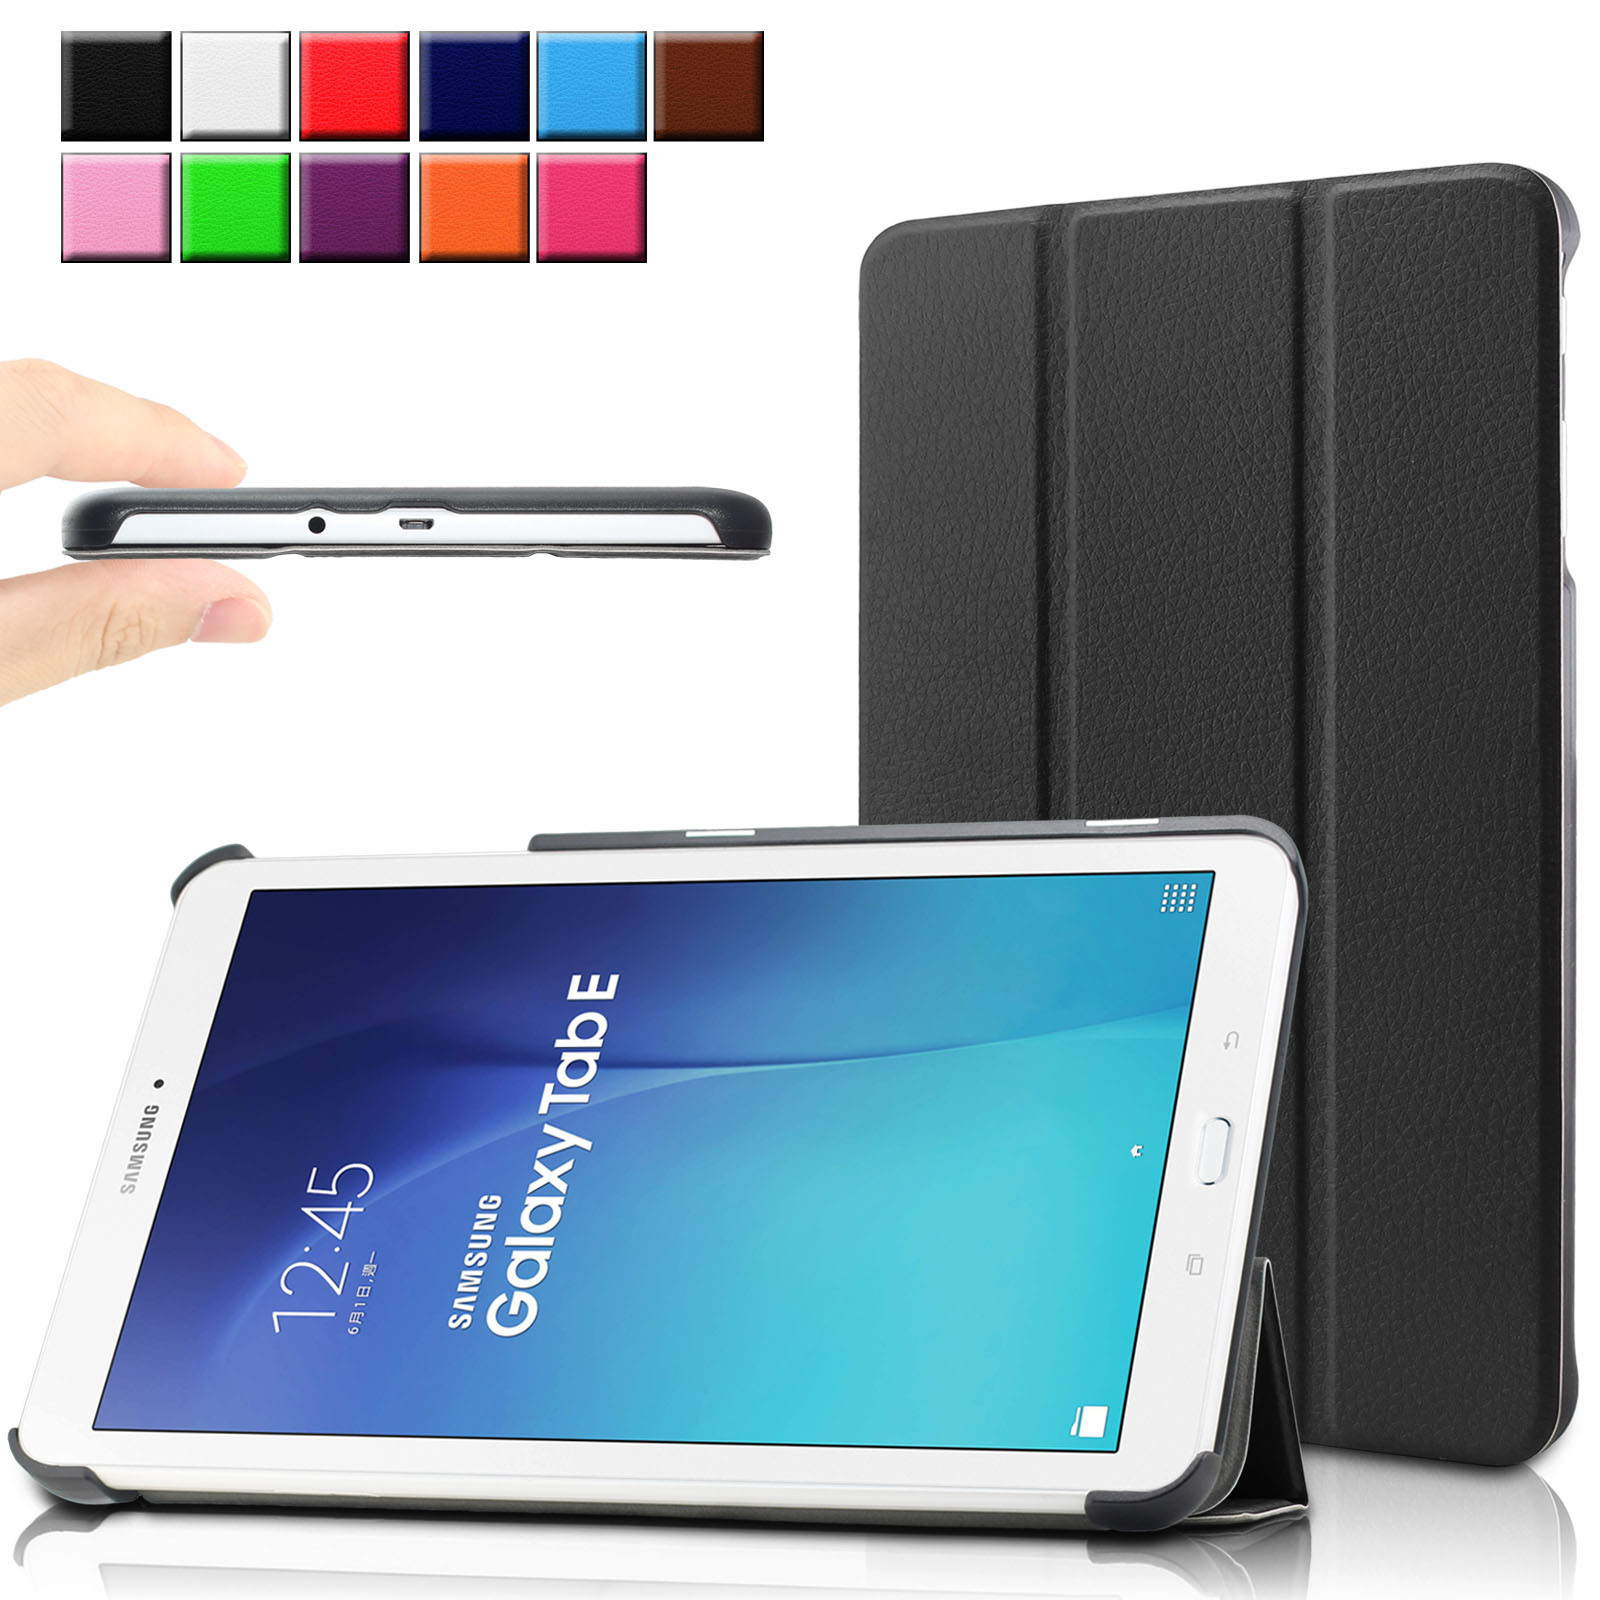 Infiland Ultra Tri-fold Case Cover For Samsung Galaxy Tab E / Tab E Nook 9.6-Inch Tablet (SM-T560 / T561 / T565 / SM-T567V Verizon 4G LTE )